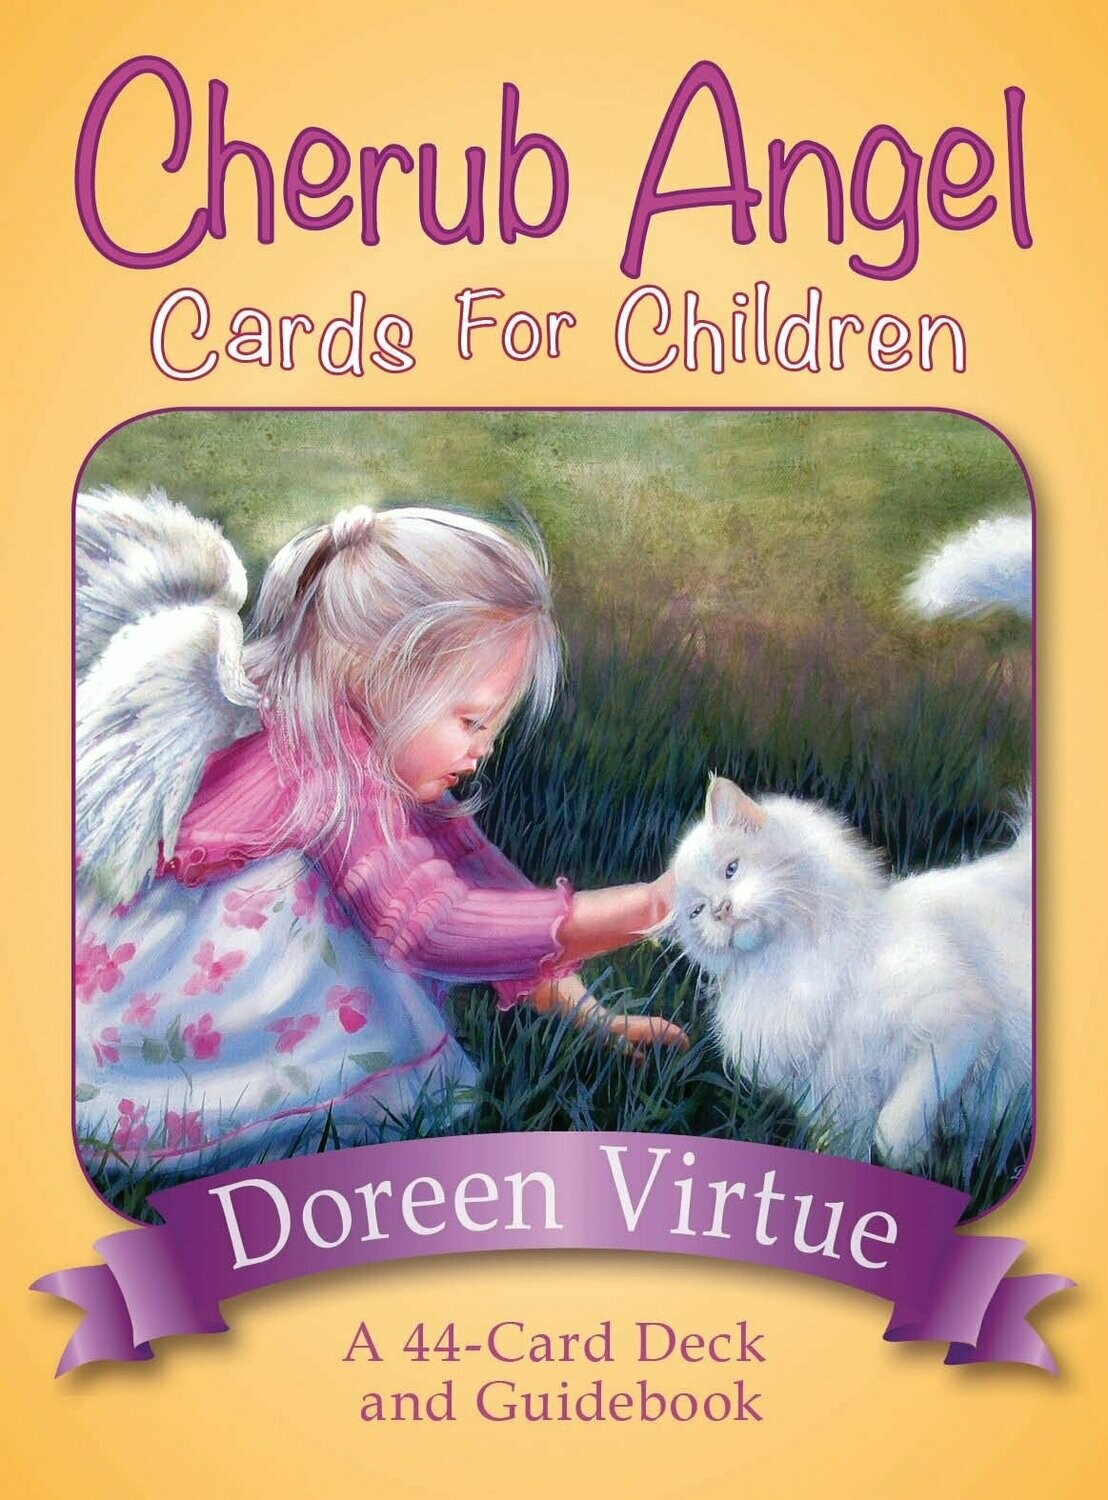 Cherub Angel Cards for Children